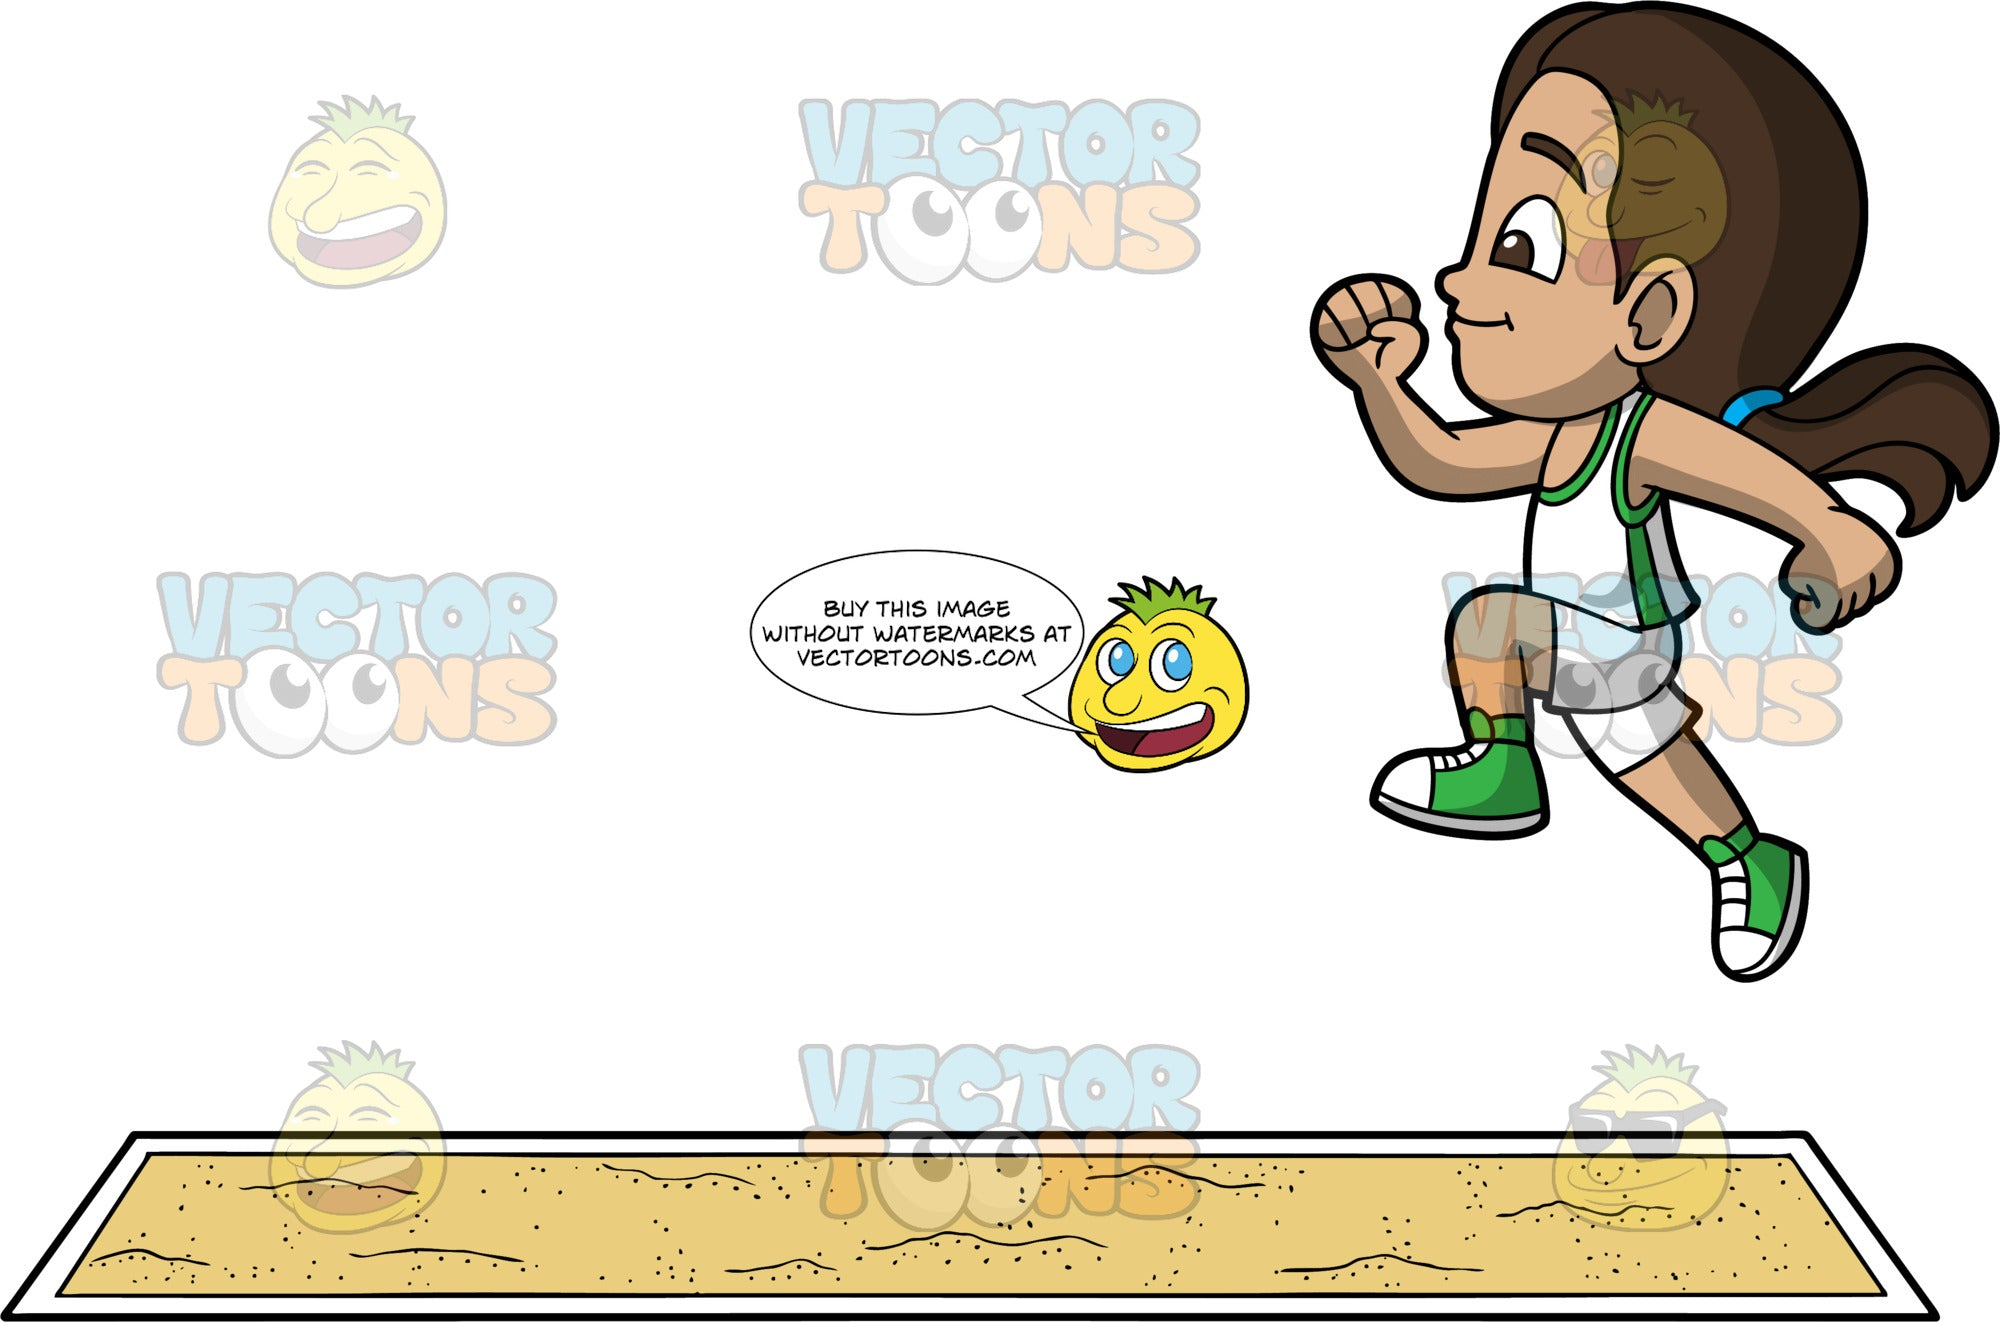 Young Isabella Jumping Into A Long Jump Pit. A young Hispanic girl wearing white shorts, a white and green tank top, and green running shoes, jumping in the air and getting ready to land in a pit of sand